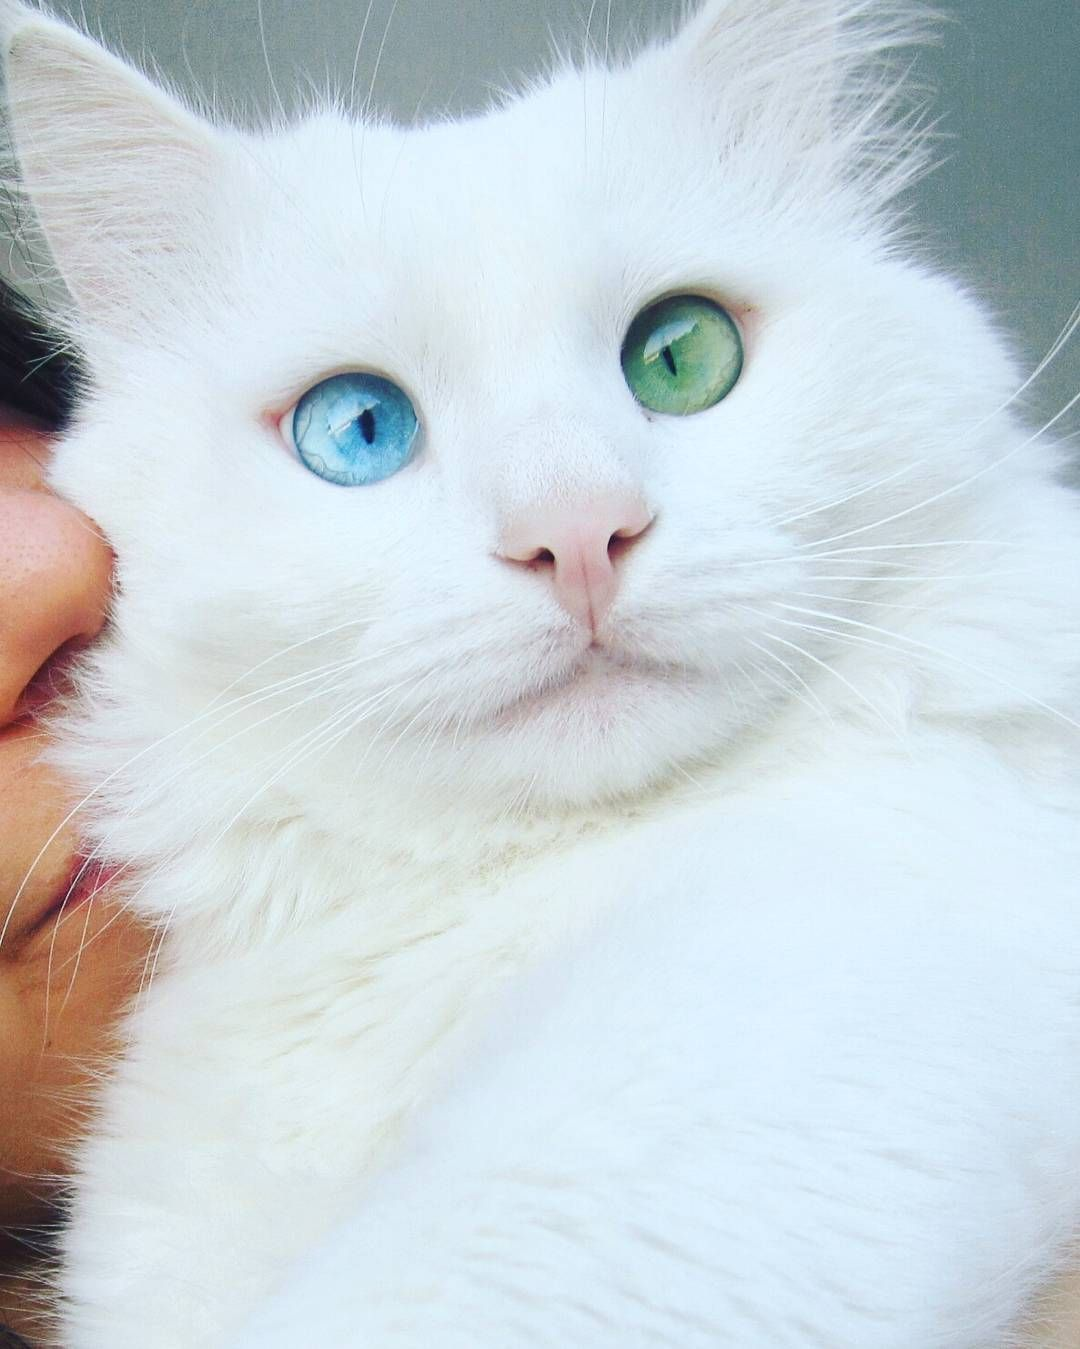 SnowWhite Cat Has The Most Hypnotizing Eyes Of Different Color - This cat has the most amazing multi coloured eyes ever